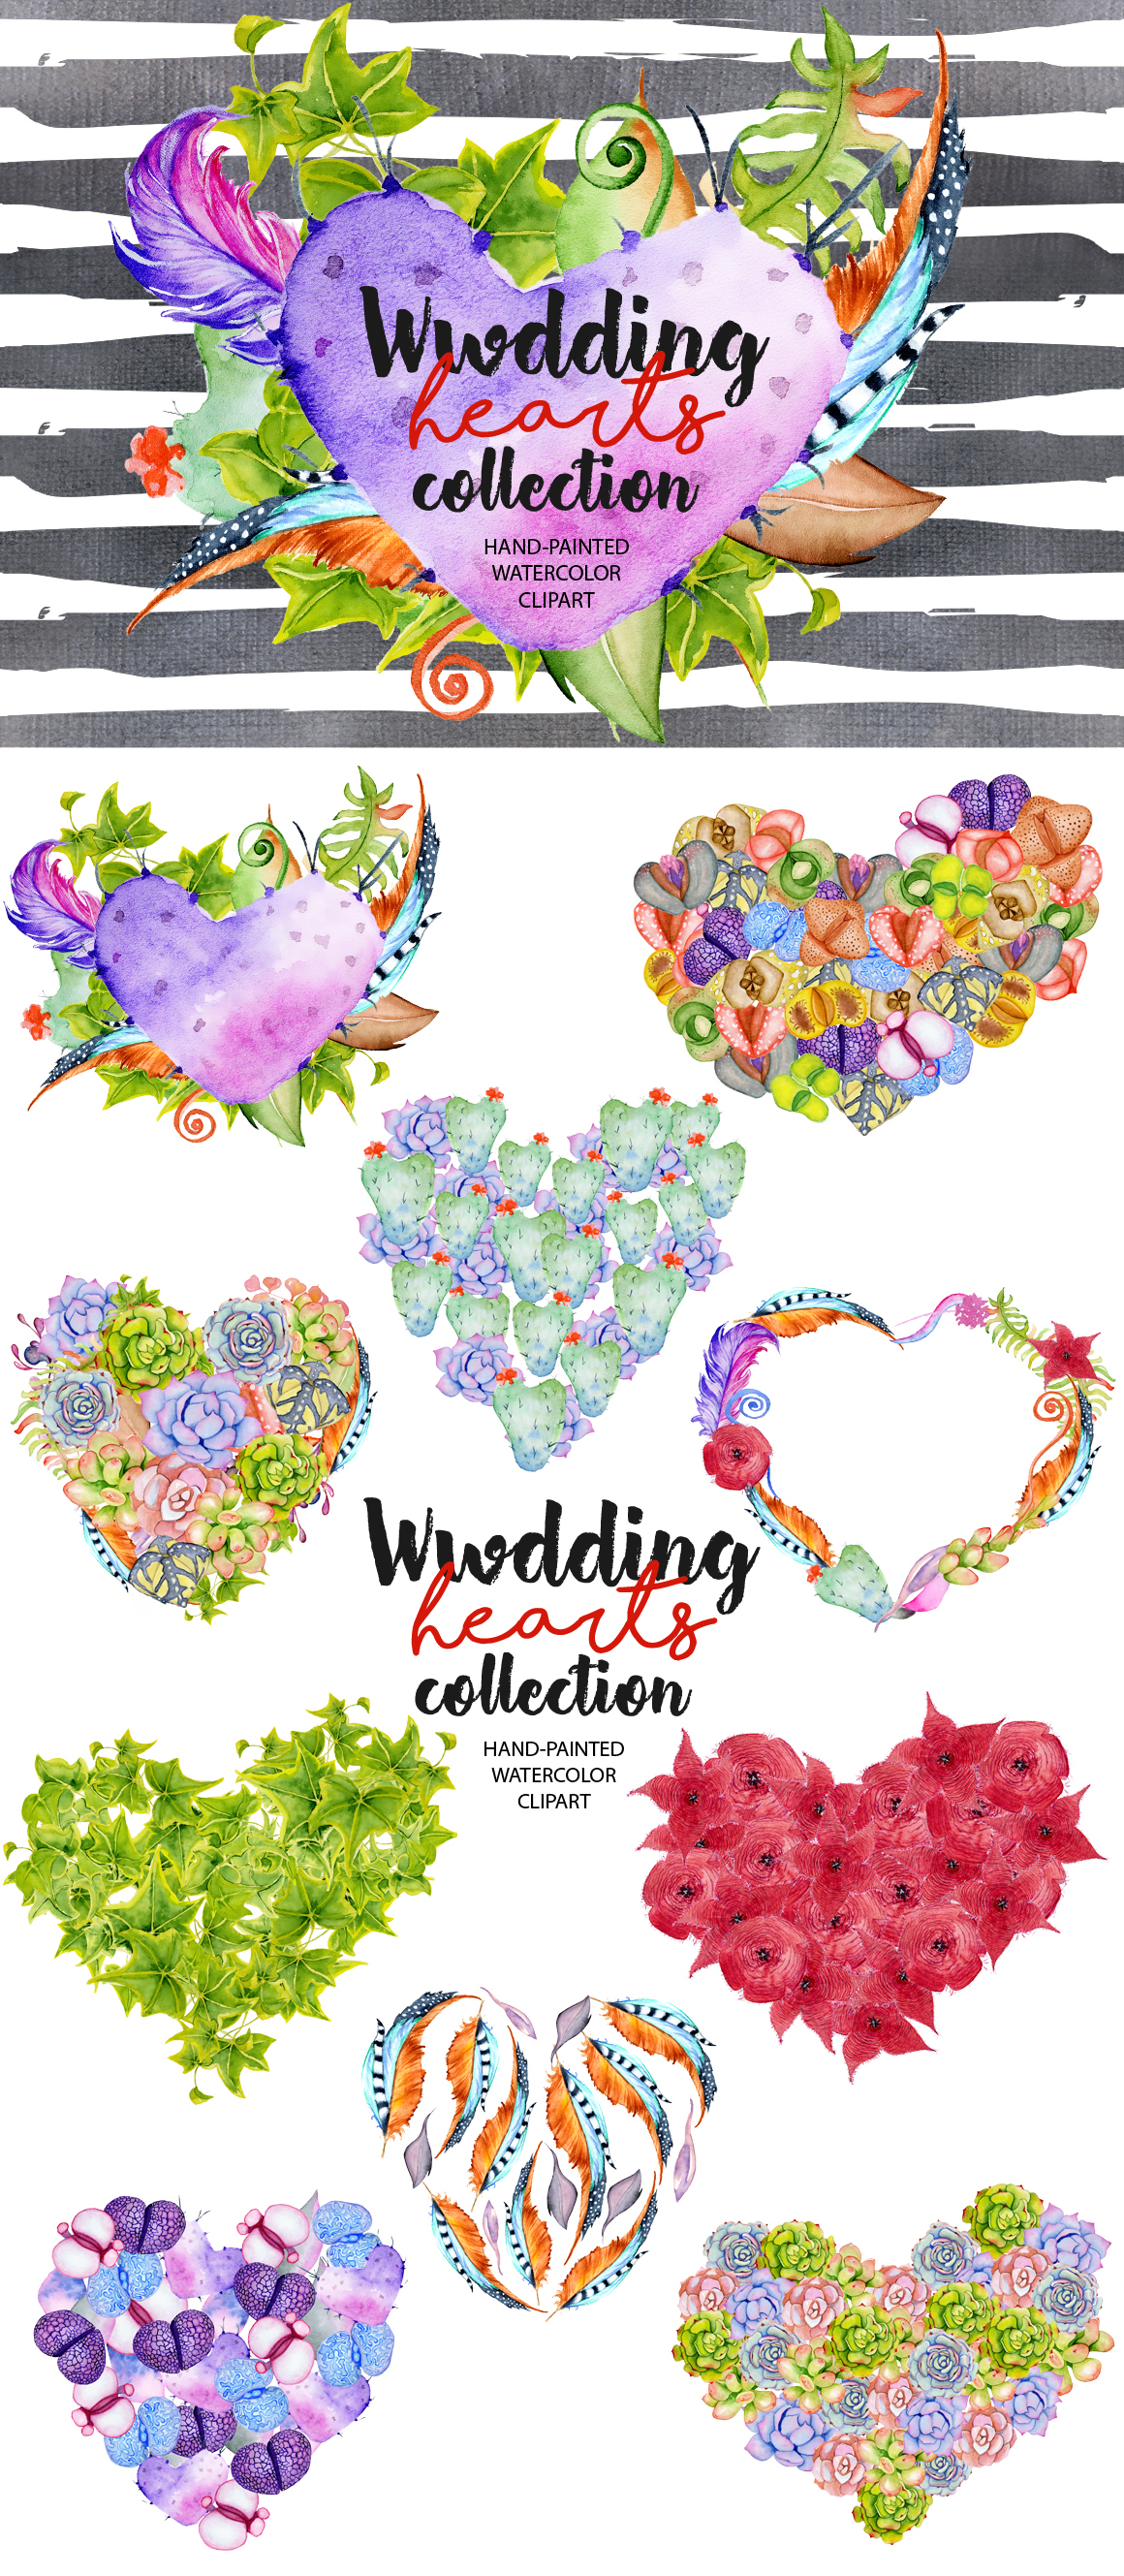 Wedding cactus hearts collection